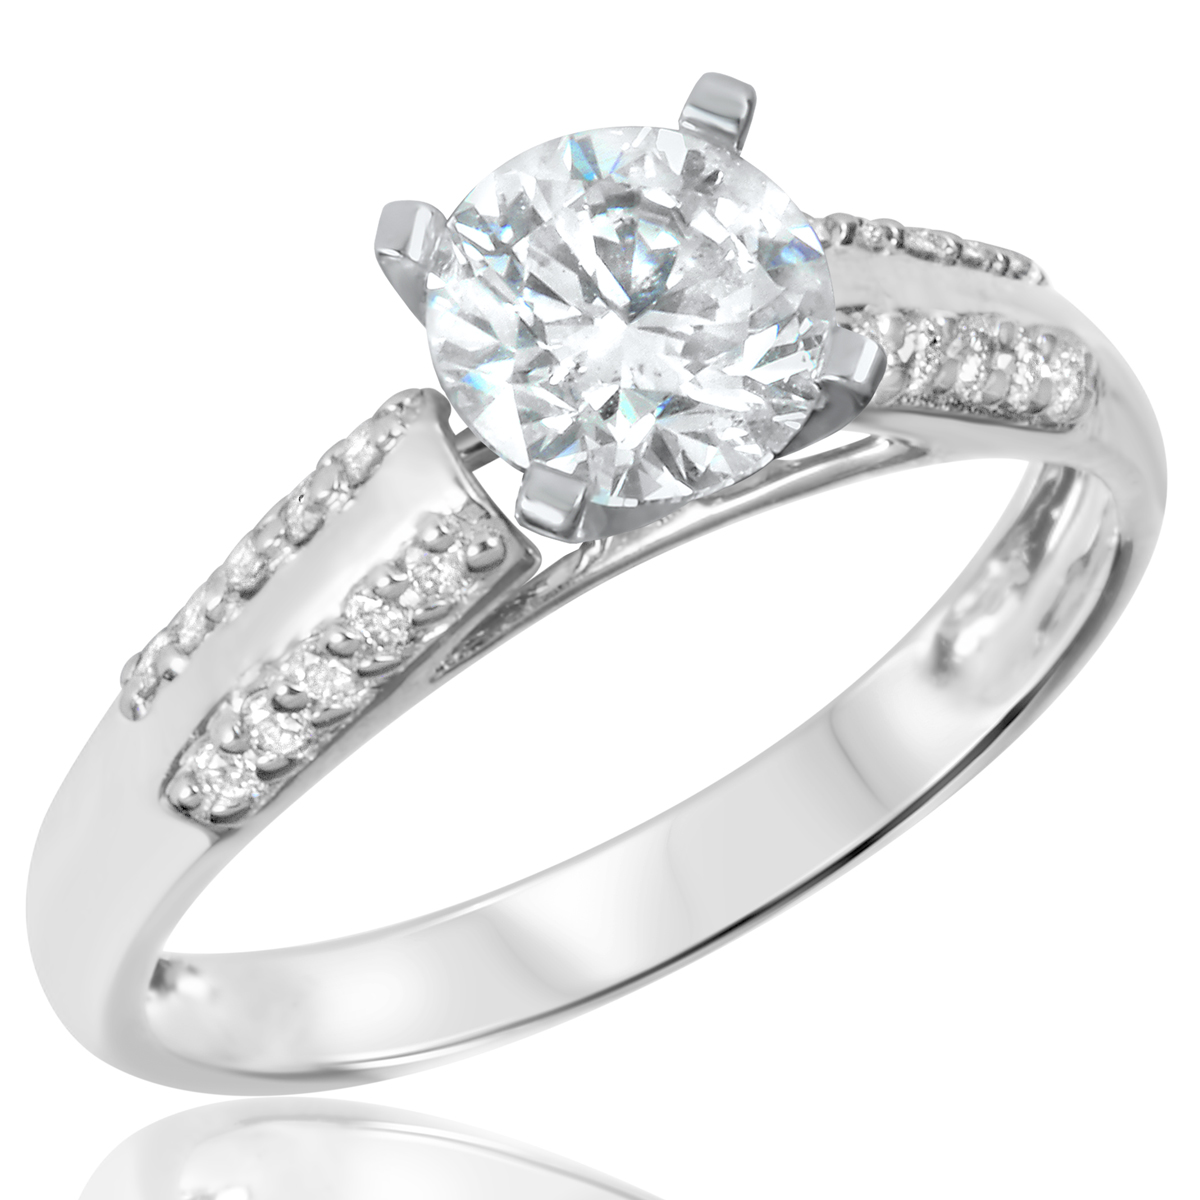 1 1/5 CT. T.W. Diamond Ladies Engagement Ring 14K White Gold